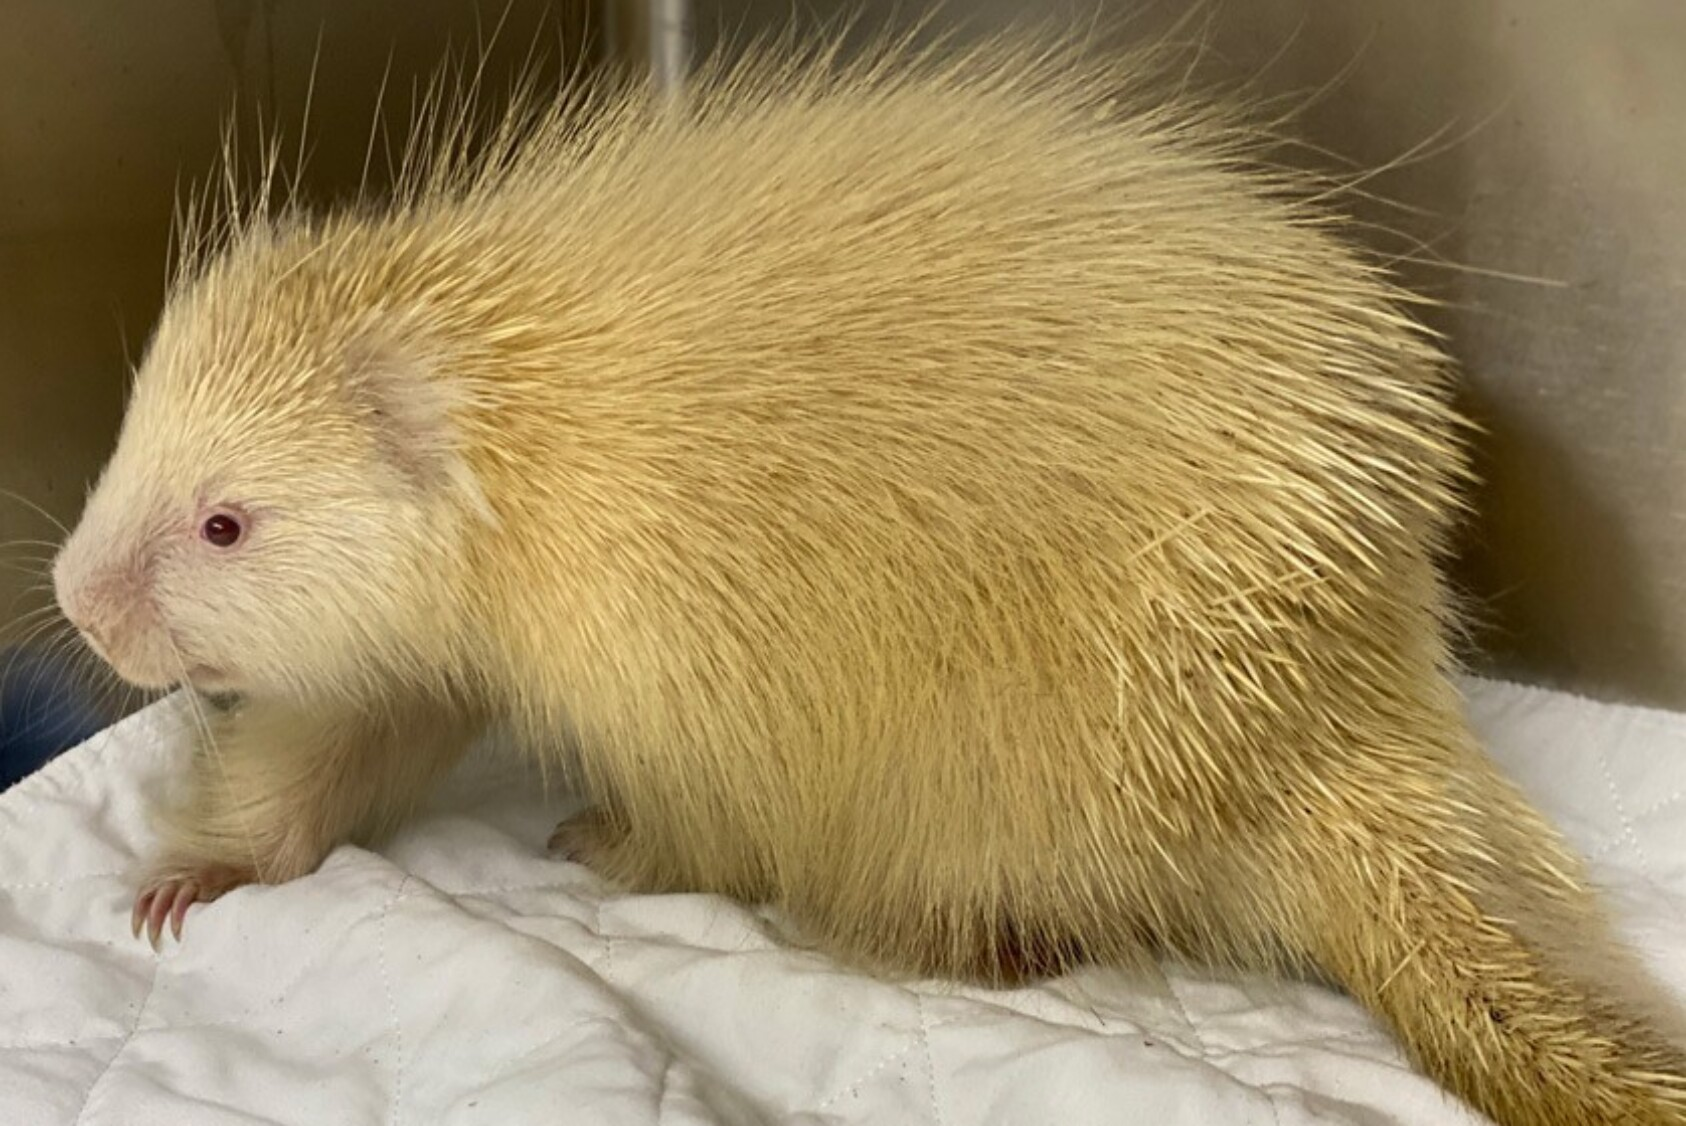 After treatment and surgery, the porcupine made a rapid recovery.